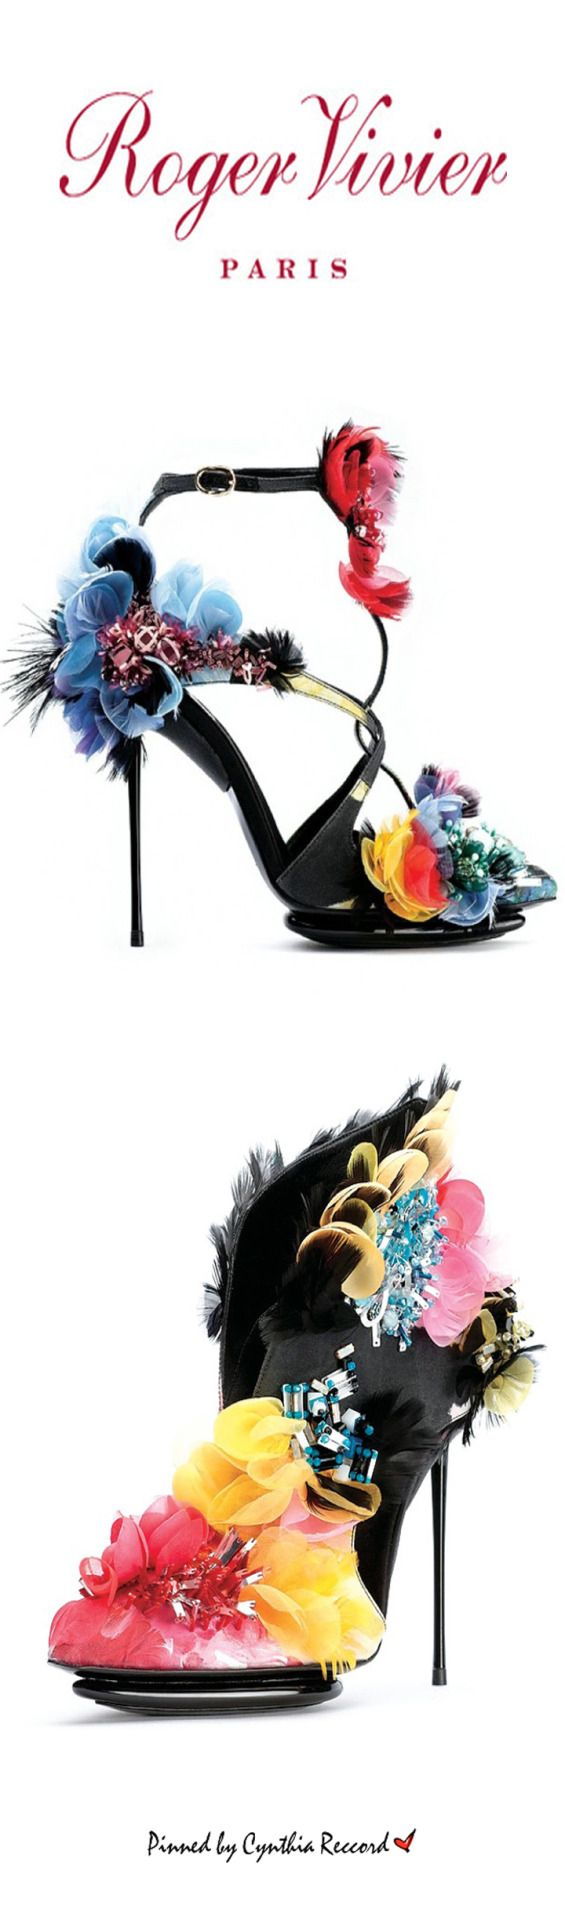 Roger Vivier's Iconic Shoes | SS 2015 (For Pinterest)